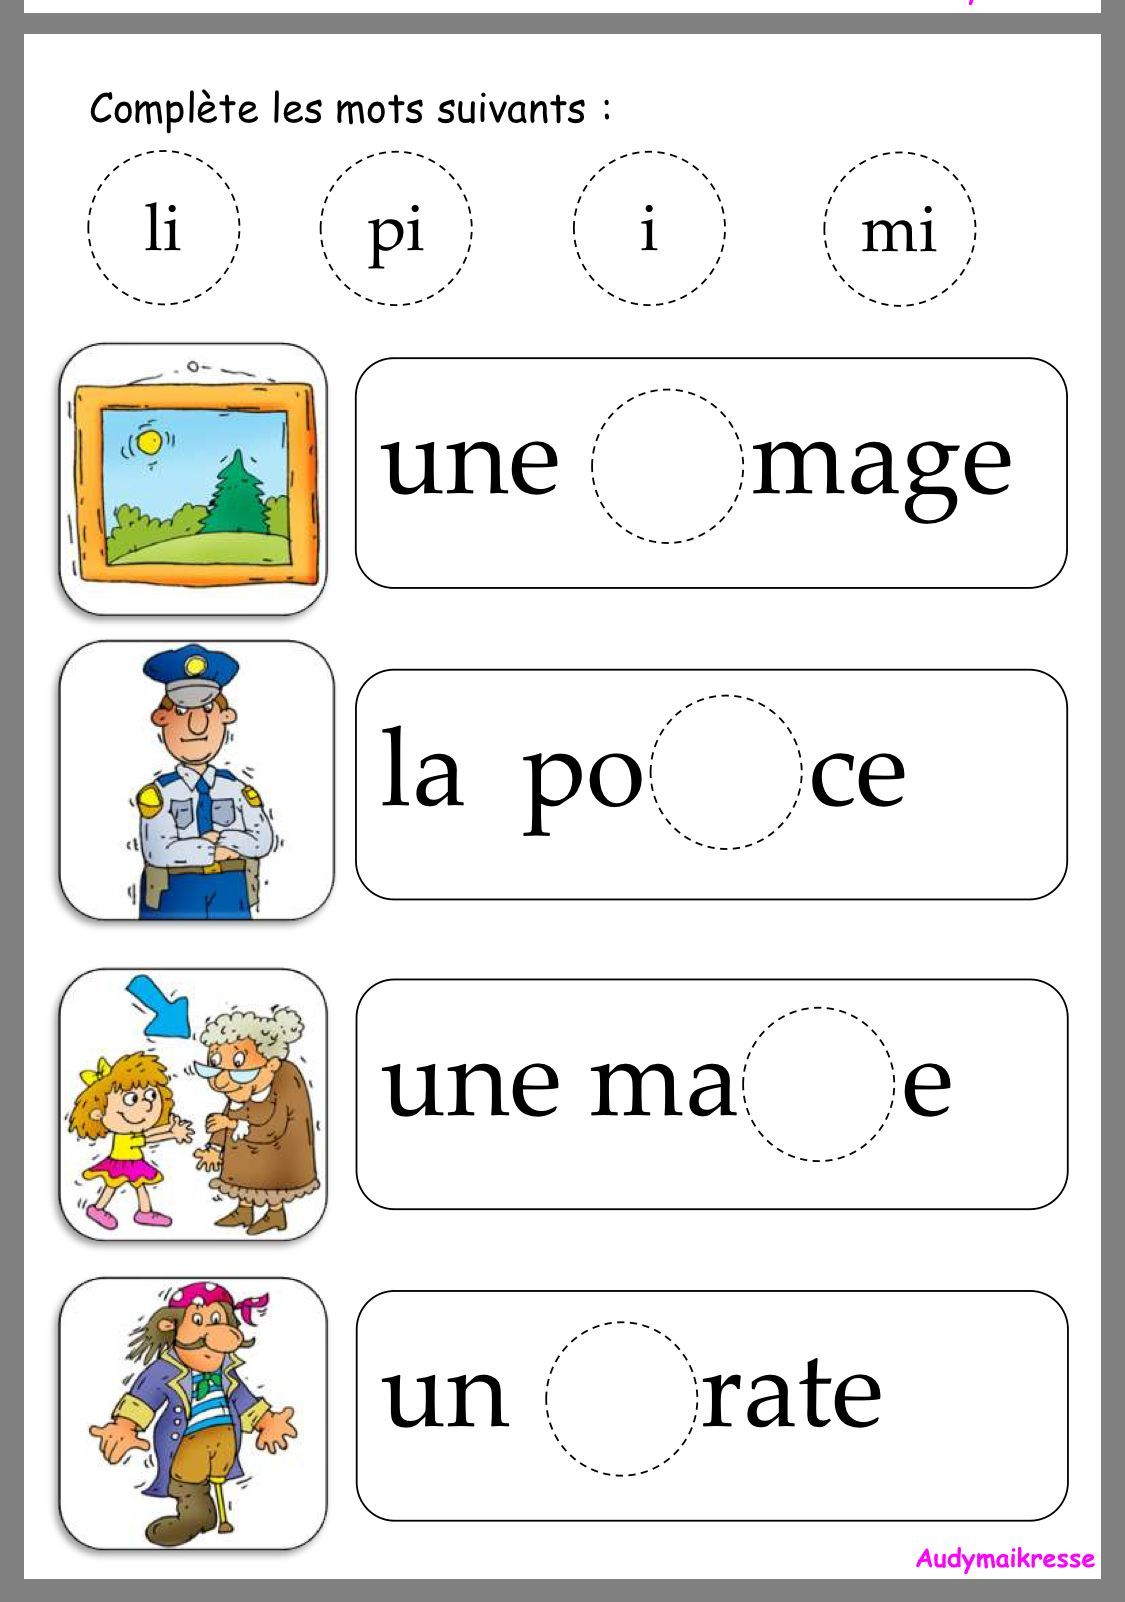 Worksheet Of Verbs For Kids Worksheet Verbs For Kids In